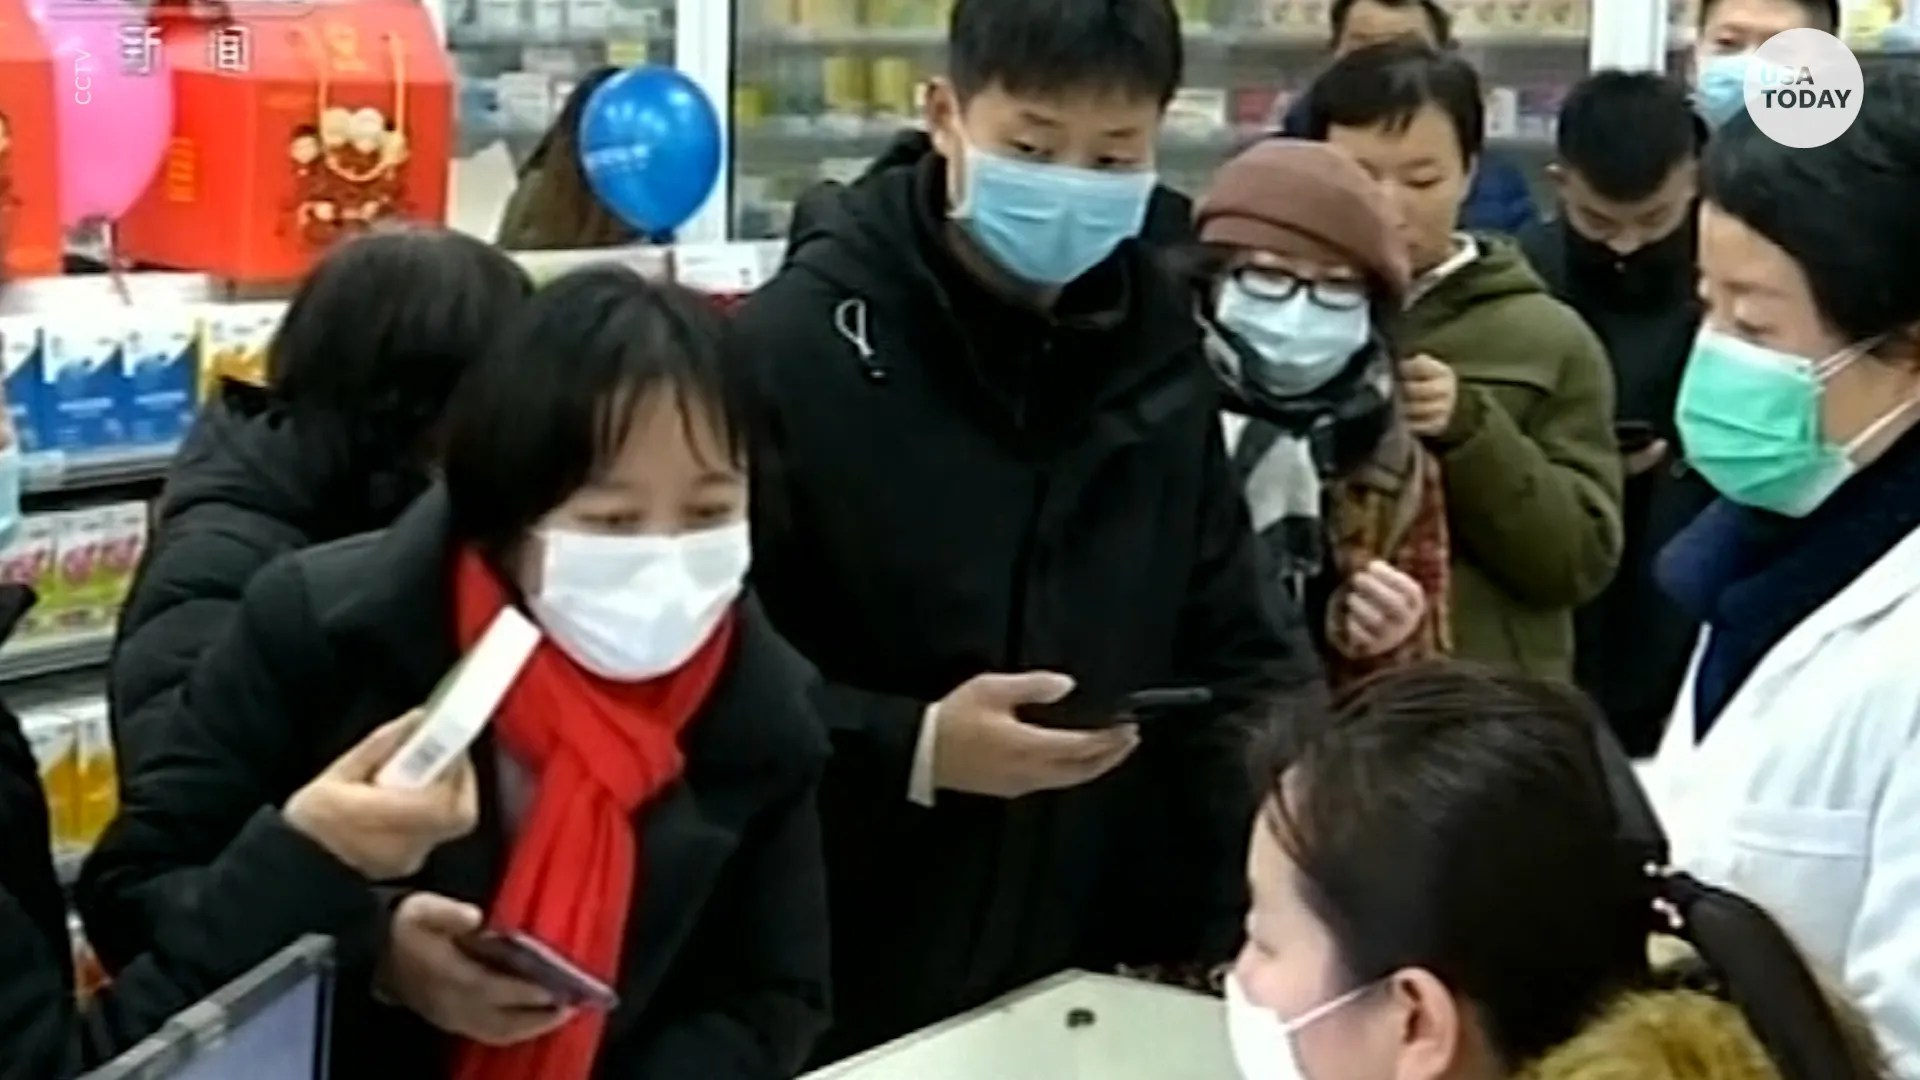 Coronavirus from Wuhan, China: Fifth US patient diagnosed